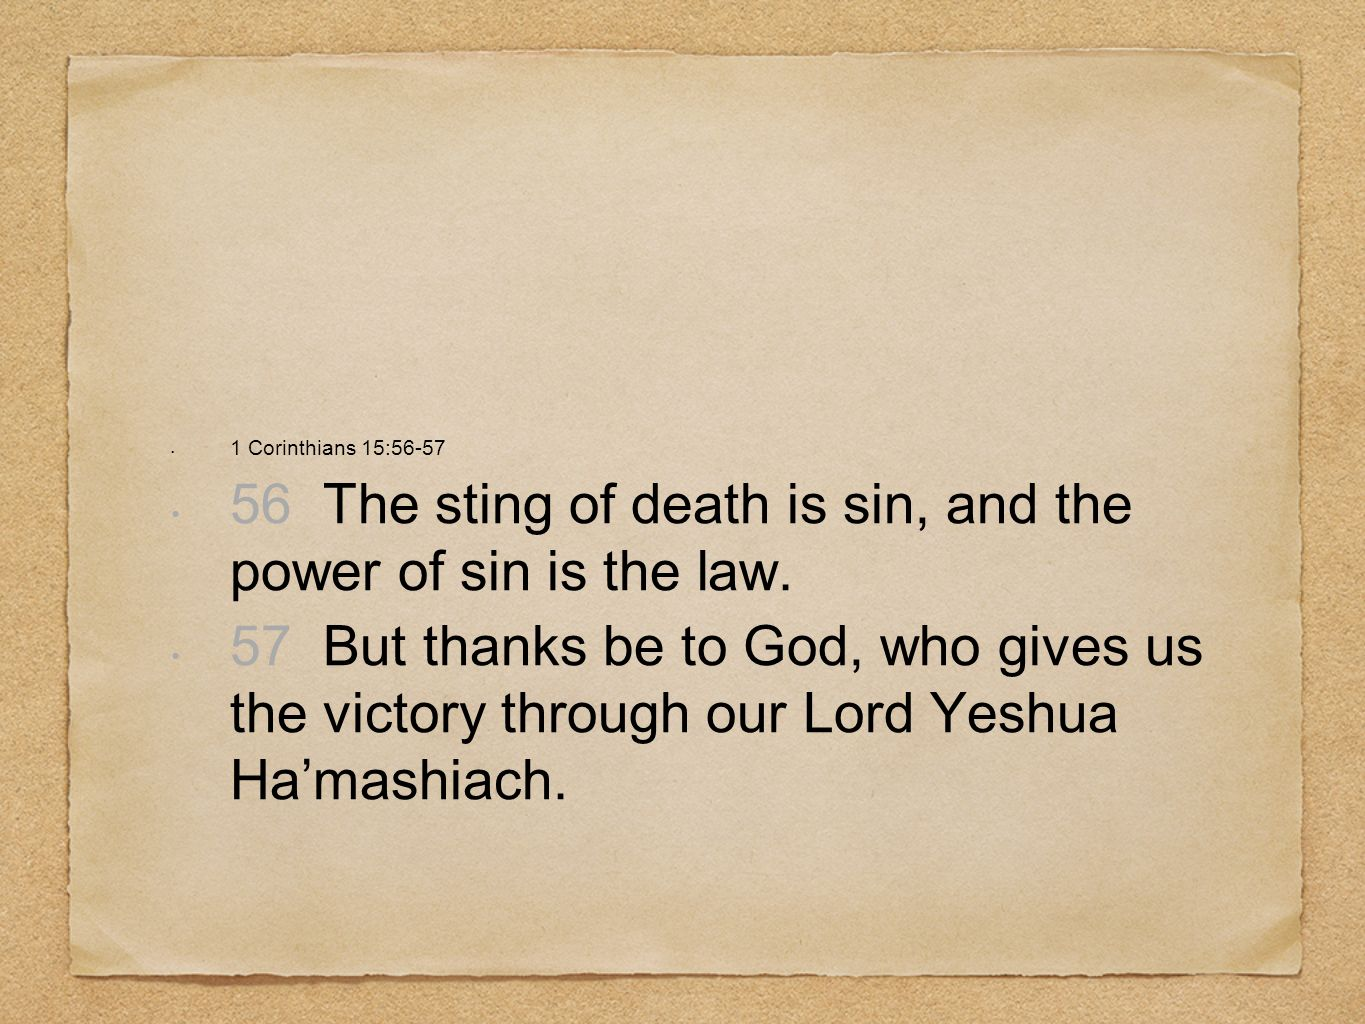 56 The sting of death is sin, and the power of sin is the law.